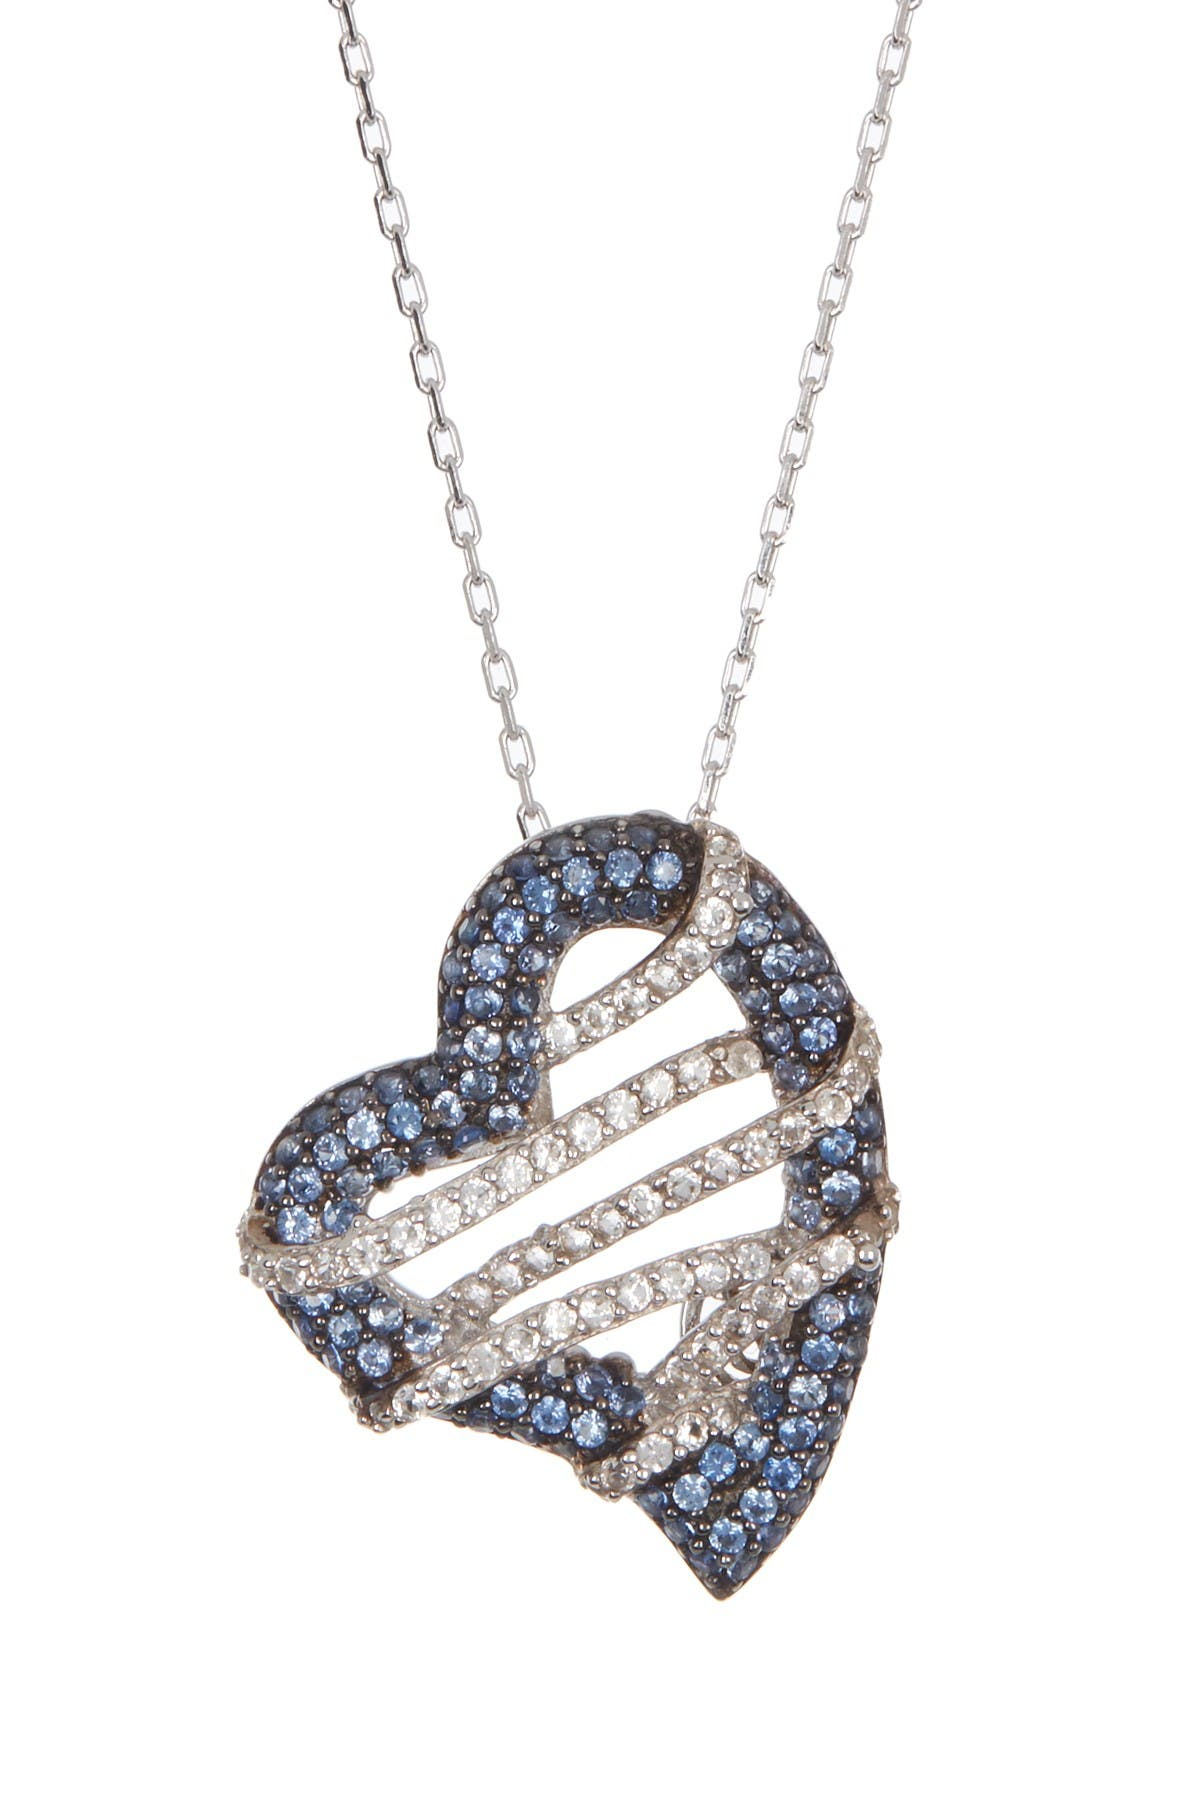 Image of Suzy Levian Sterling Silver Sapphire Heart Pendant Diamond Accent Necklace - 0.02 ctw